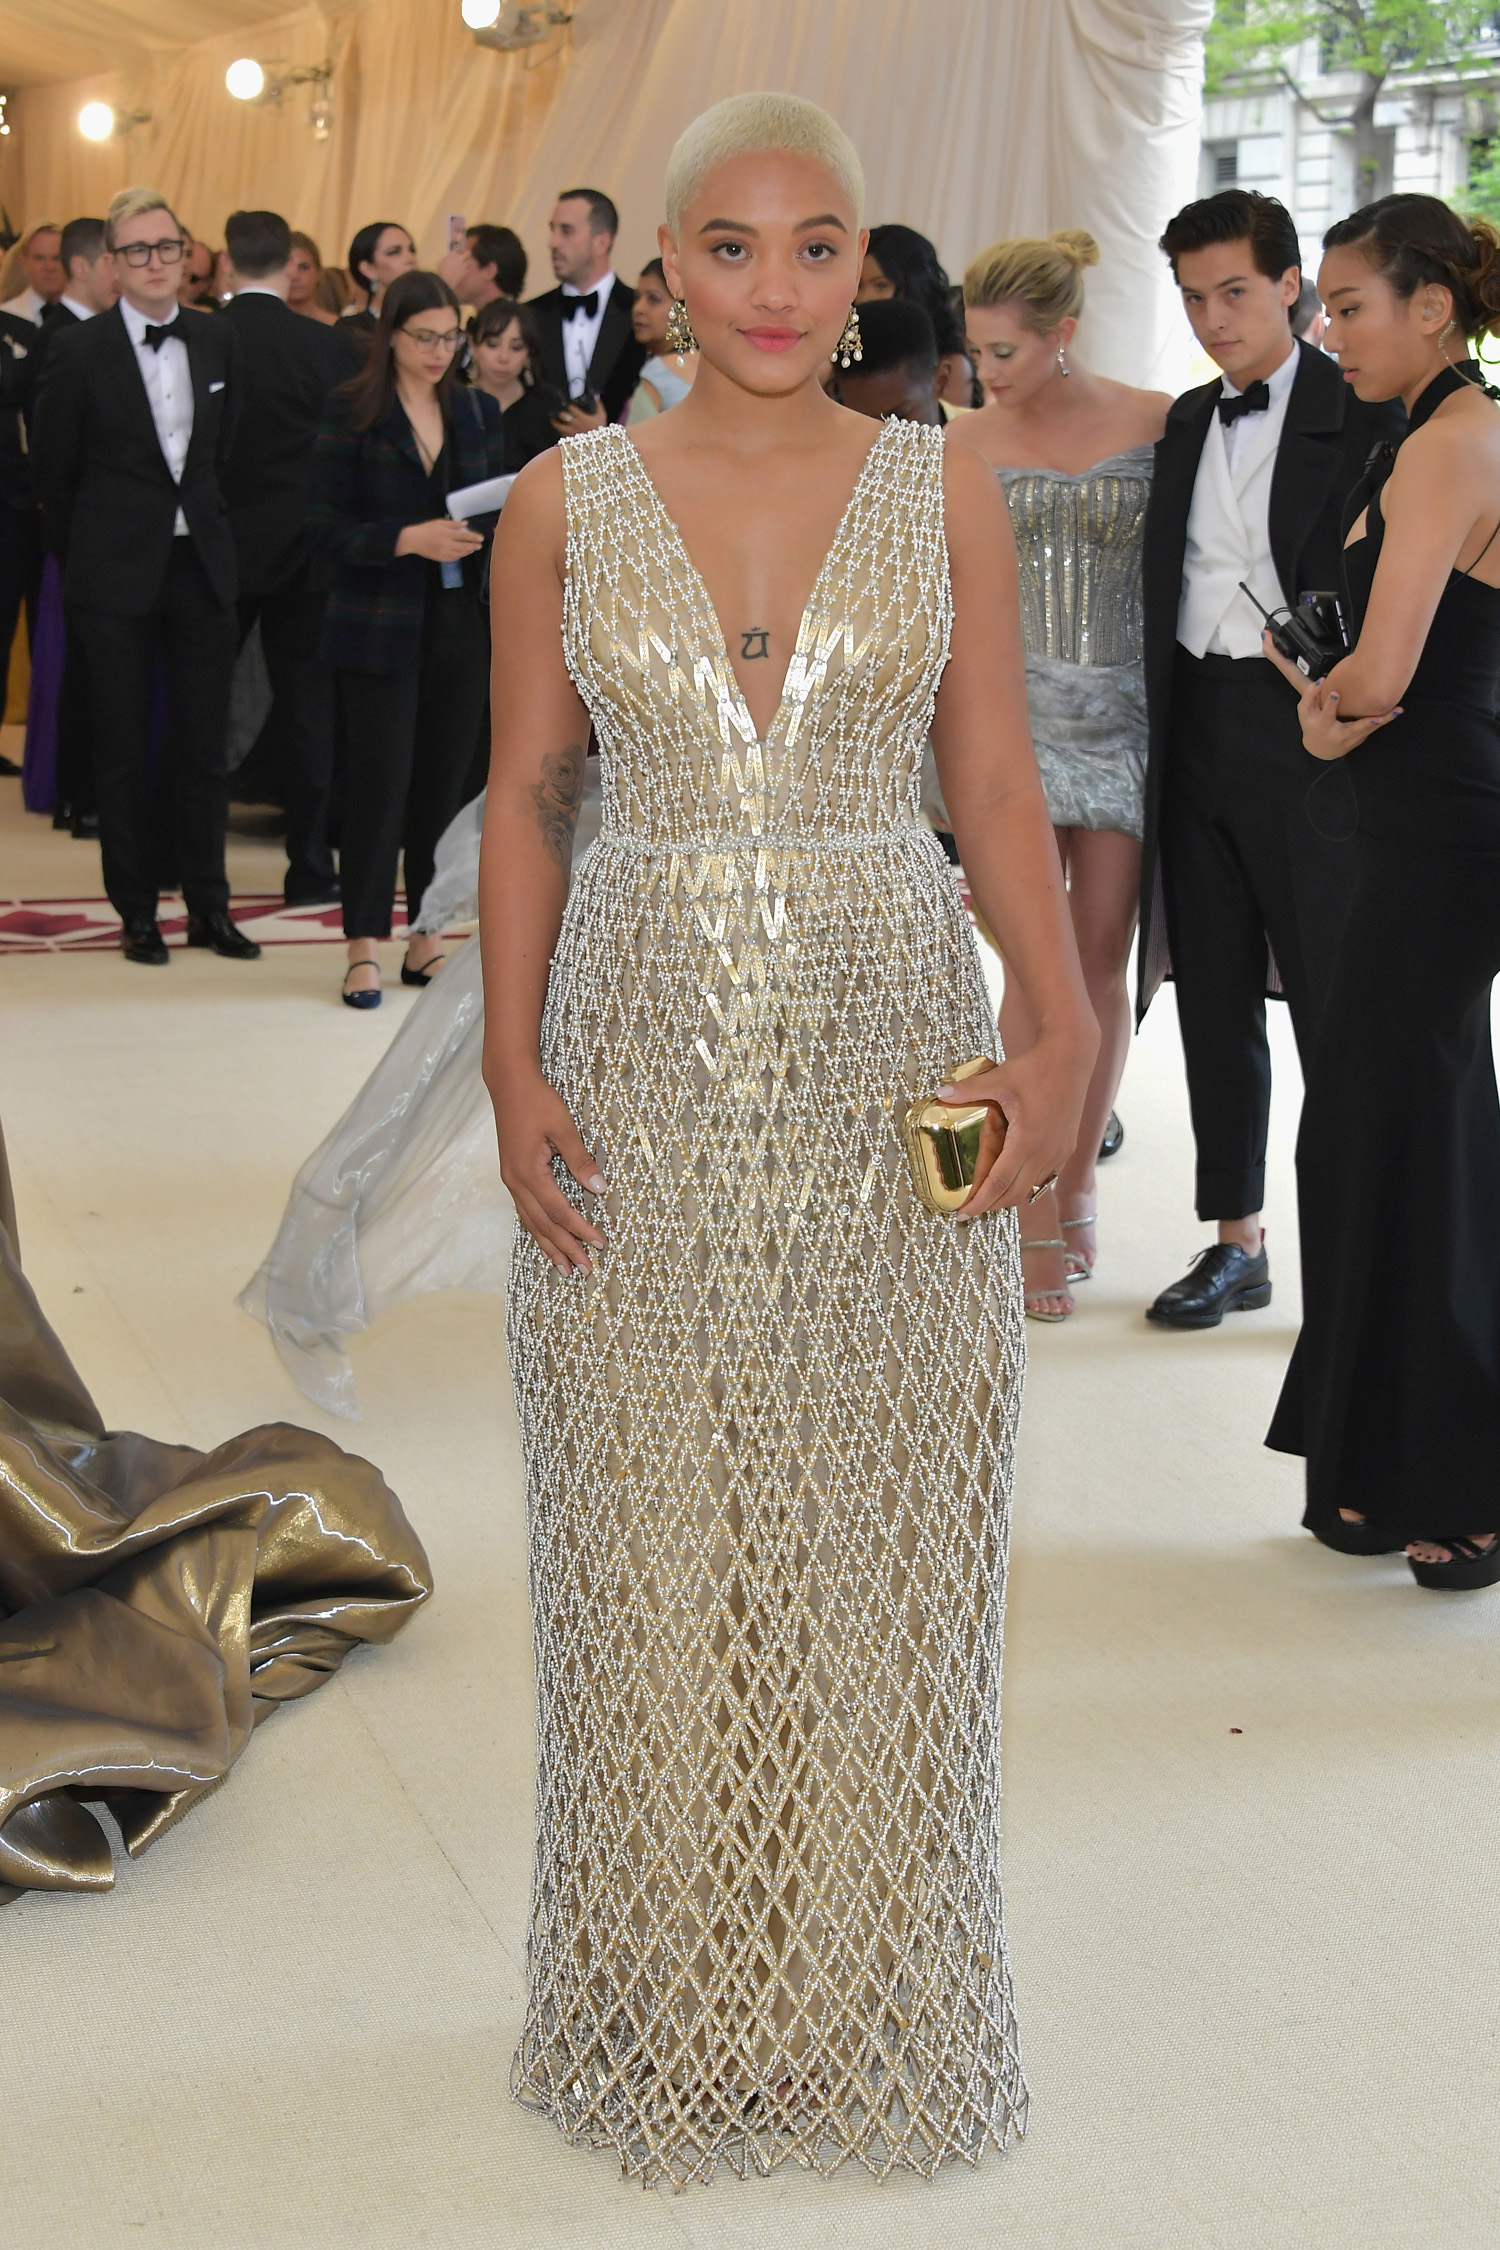 NEW YORK, NY - MAY 07:  Kiersey Clemons attends the Heavenly Bodies: Fashion & The Catholic Imagination Costume Institute Gala at The Metropolitan Museum of Art on May 7, 2018 in New York City.  (Photo by Neilson Barnard/Getty Images)